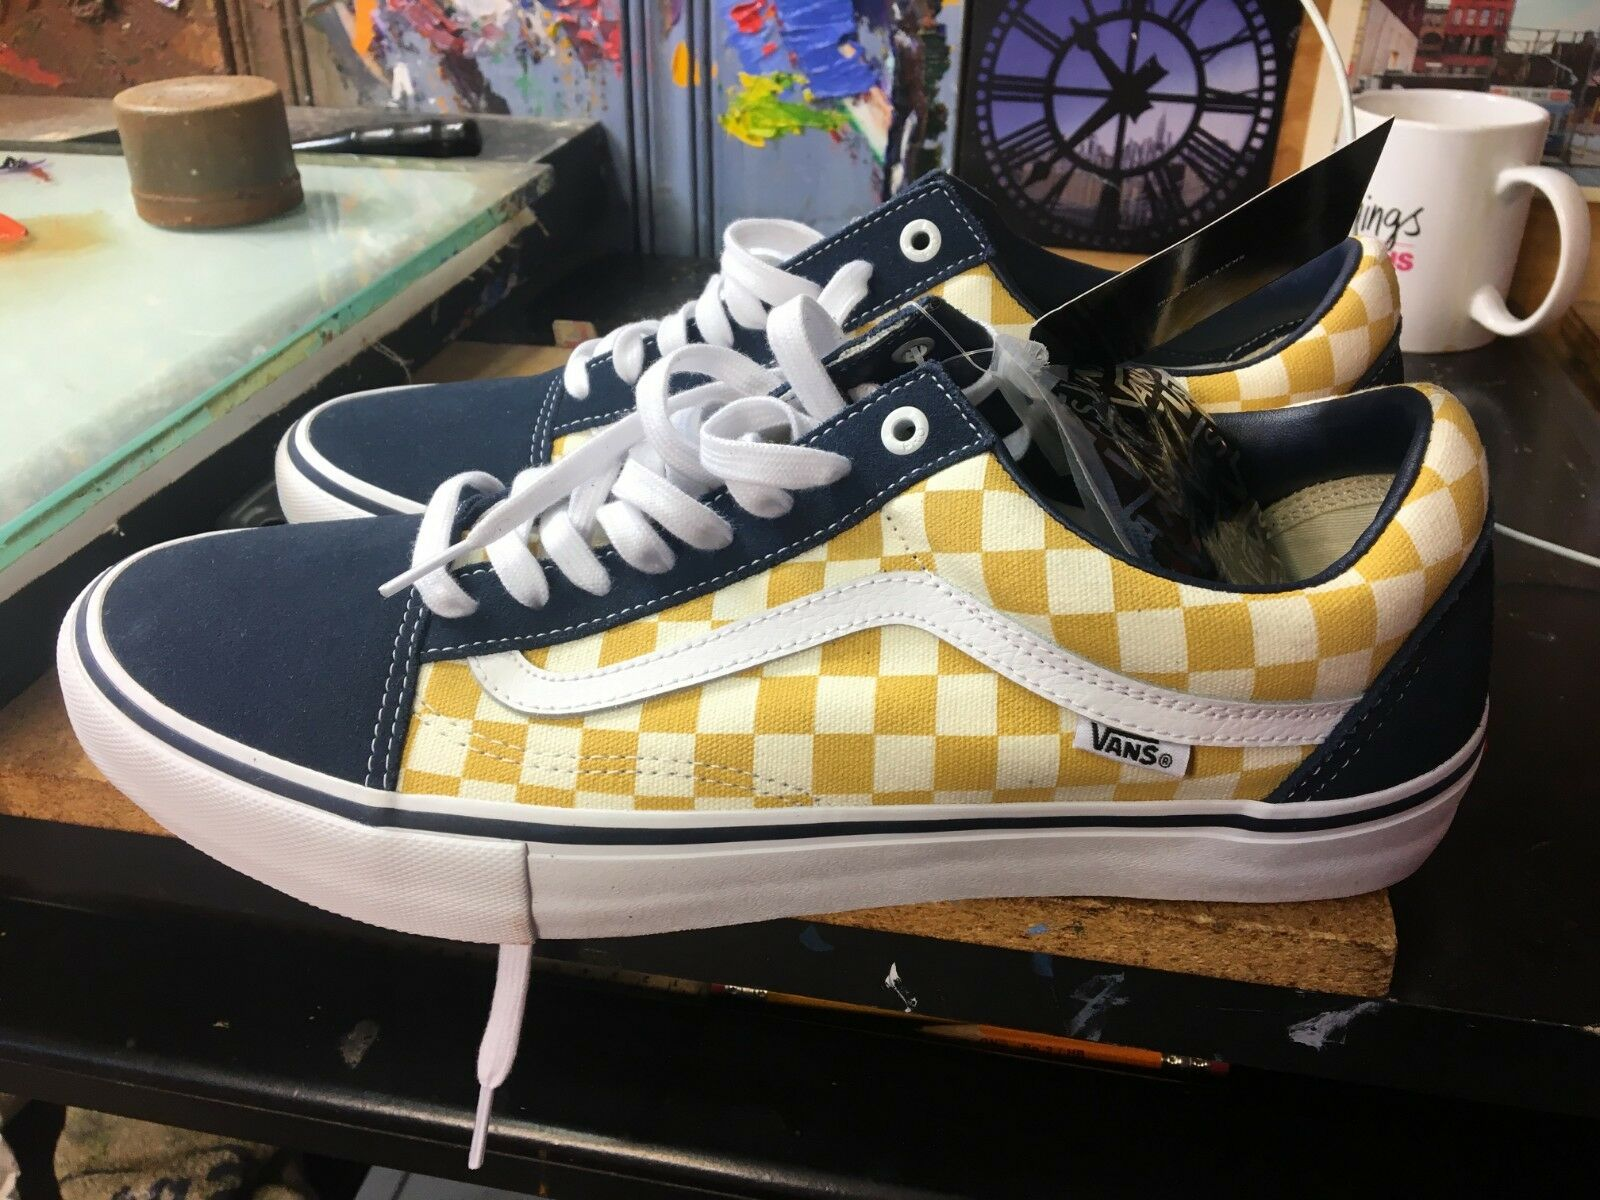 Vans Old Skool PRO (Checkerboard) DRESS blueE Yellow Size US 10 Men VN000ZD4Q40